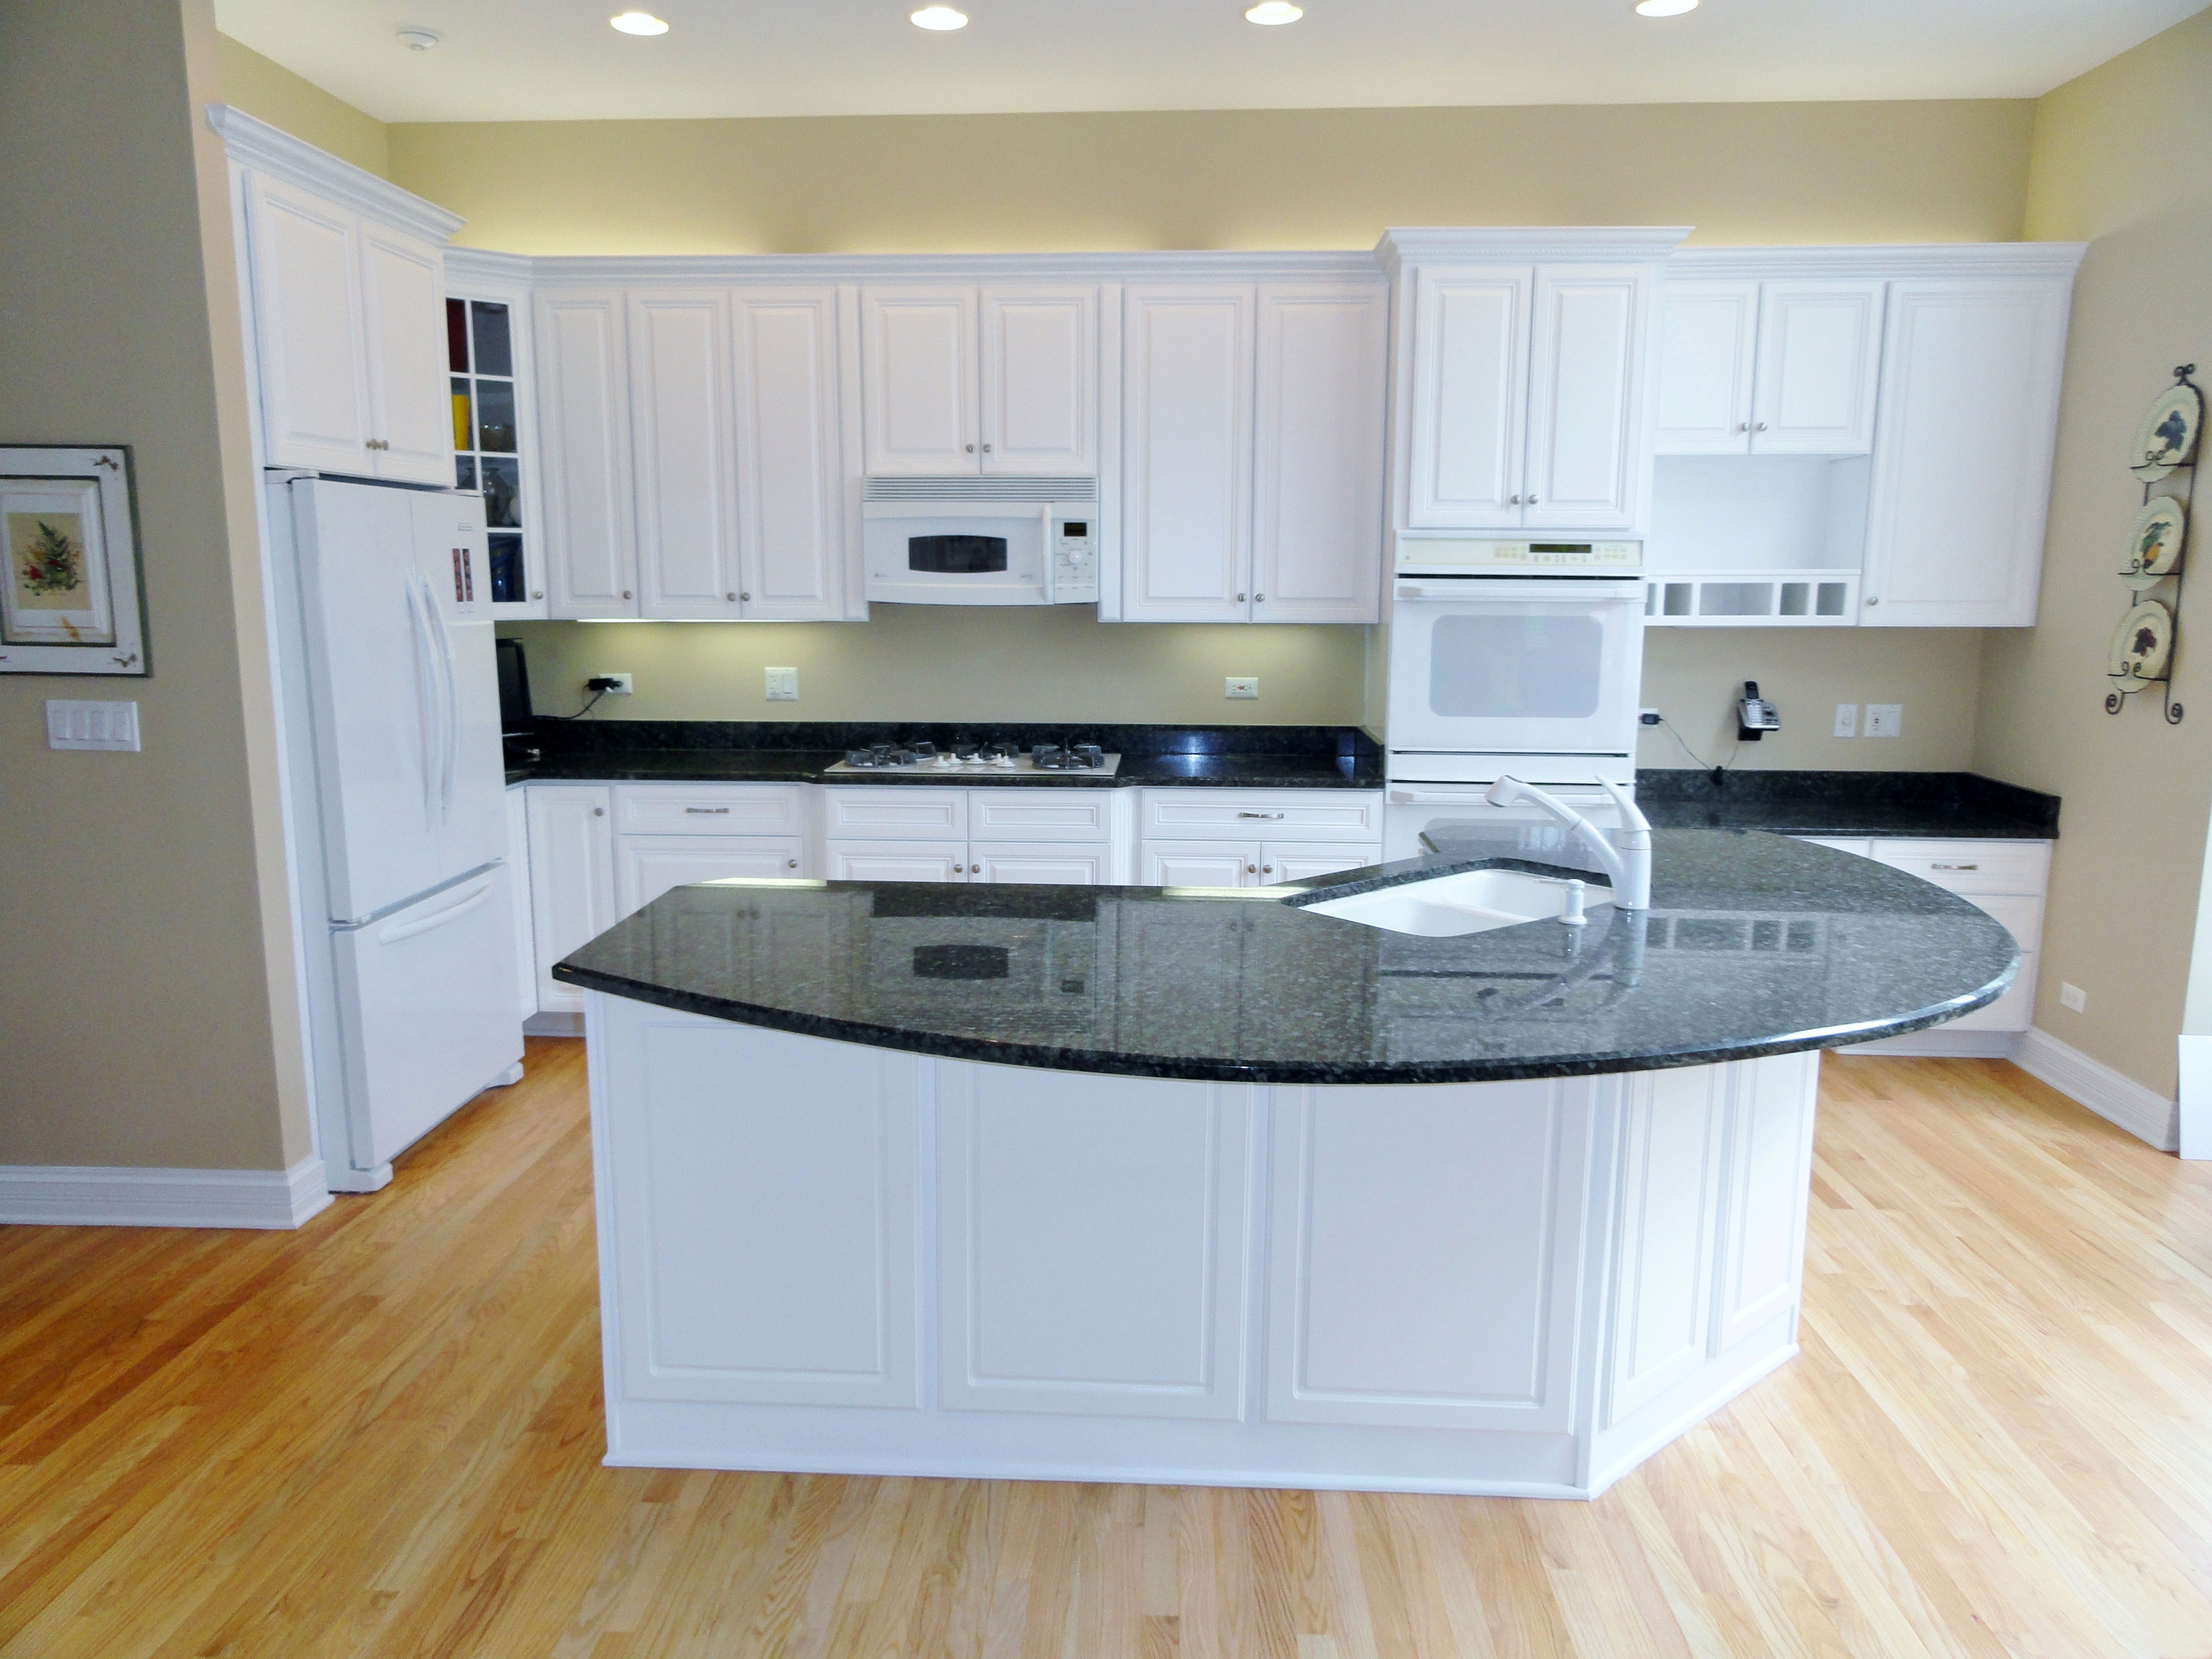 photos kitchen cabinets refacing 30 Cabinet refacing with white painted maple triple upgrade design